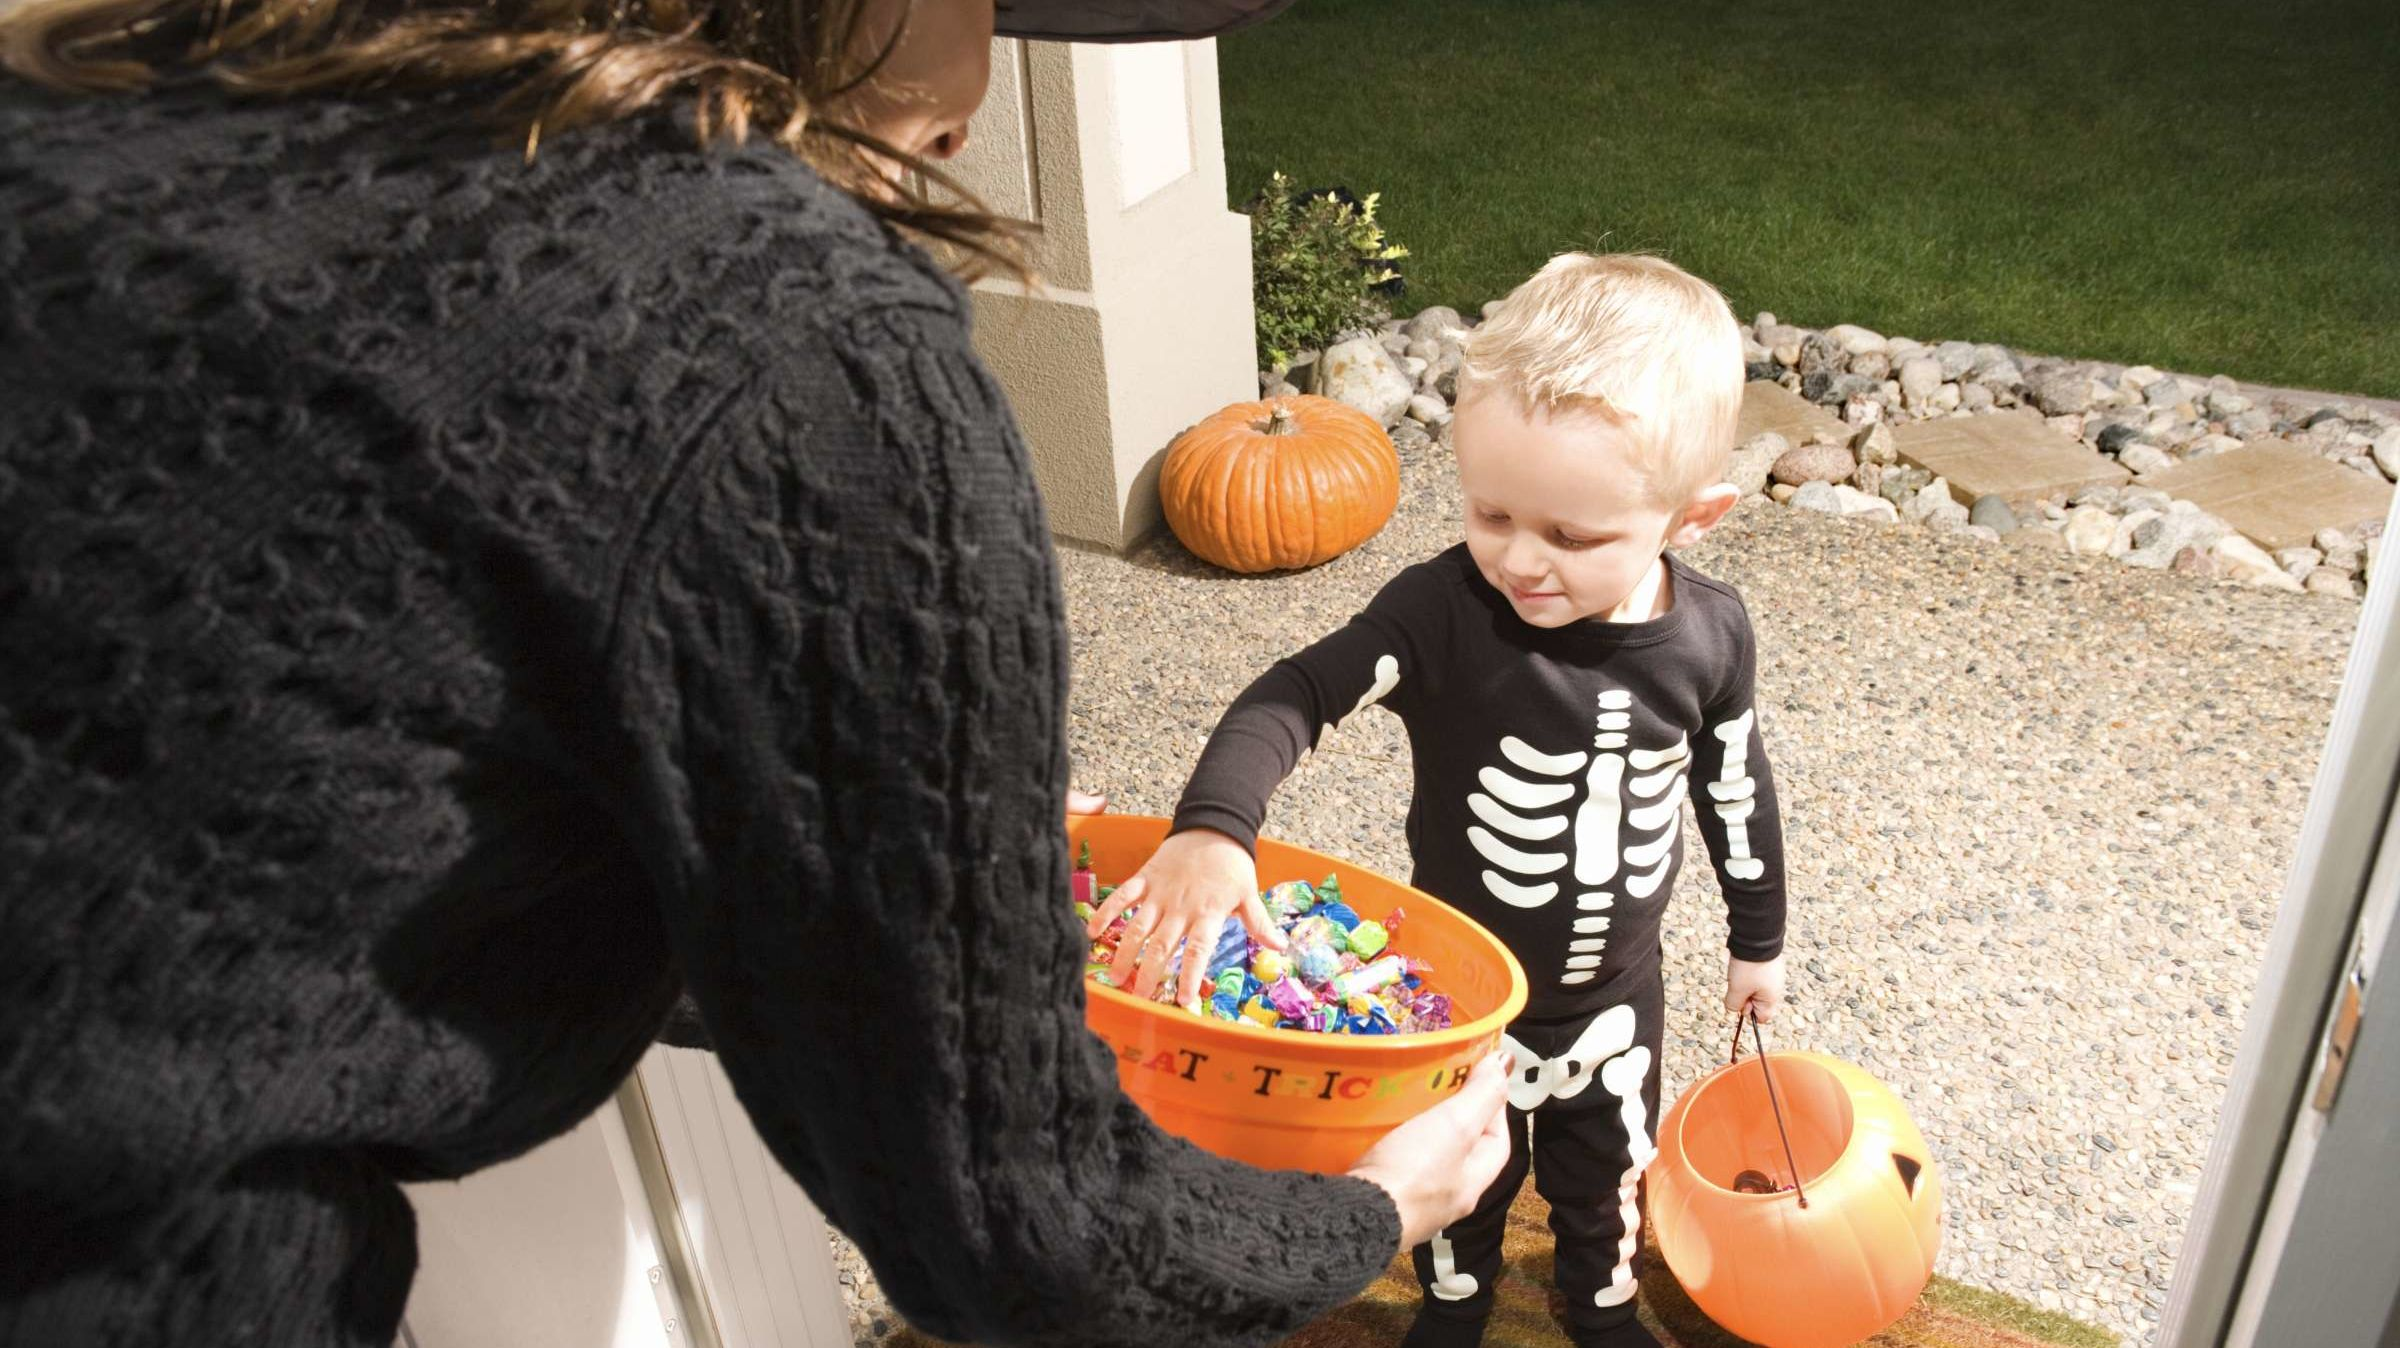 Why Do We Eat Candy on Halloween?